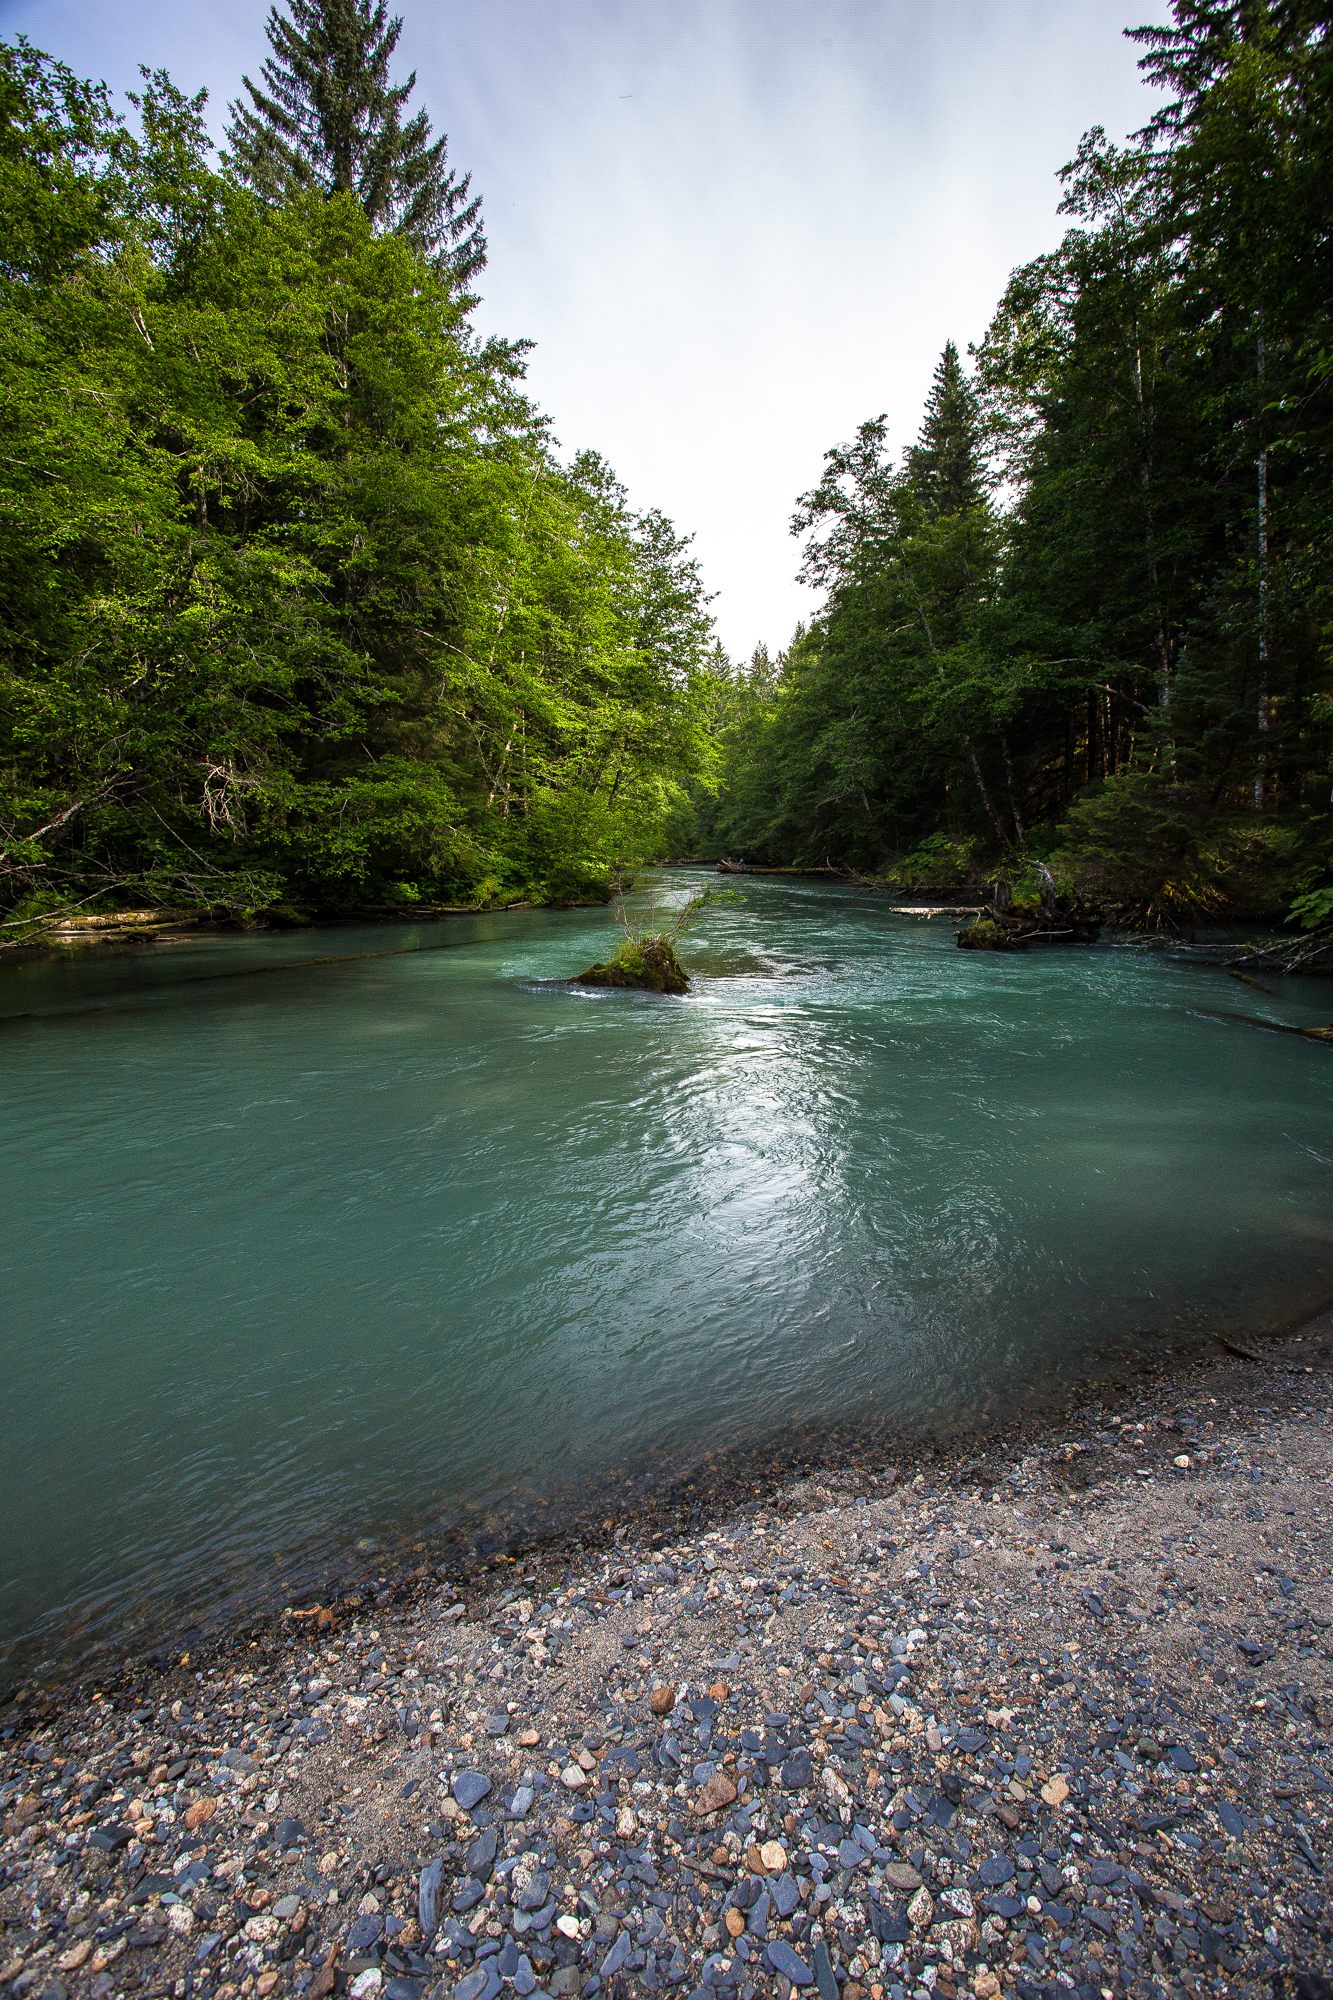 Cowee Creek runs a rich, milky blue-green as a result of the glacial flour suspended in the meltwater that feeds the stream. Even when air temperatures reach their peak, meltwater-fed streams like Cowee remain at chilly, optimal temperatures for salmonids (photo: Chad Shmukler).